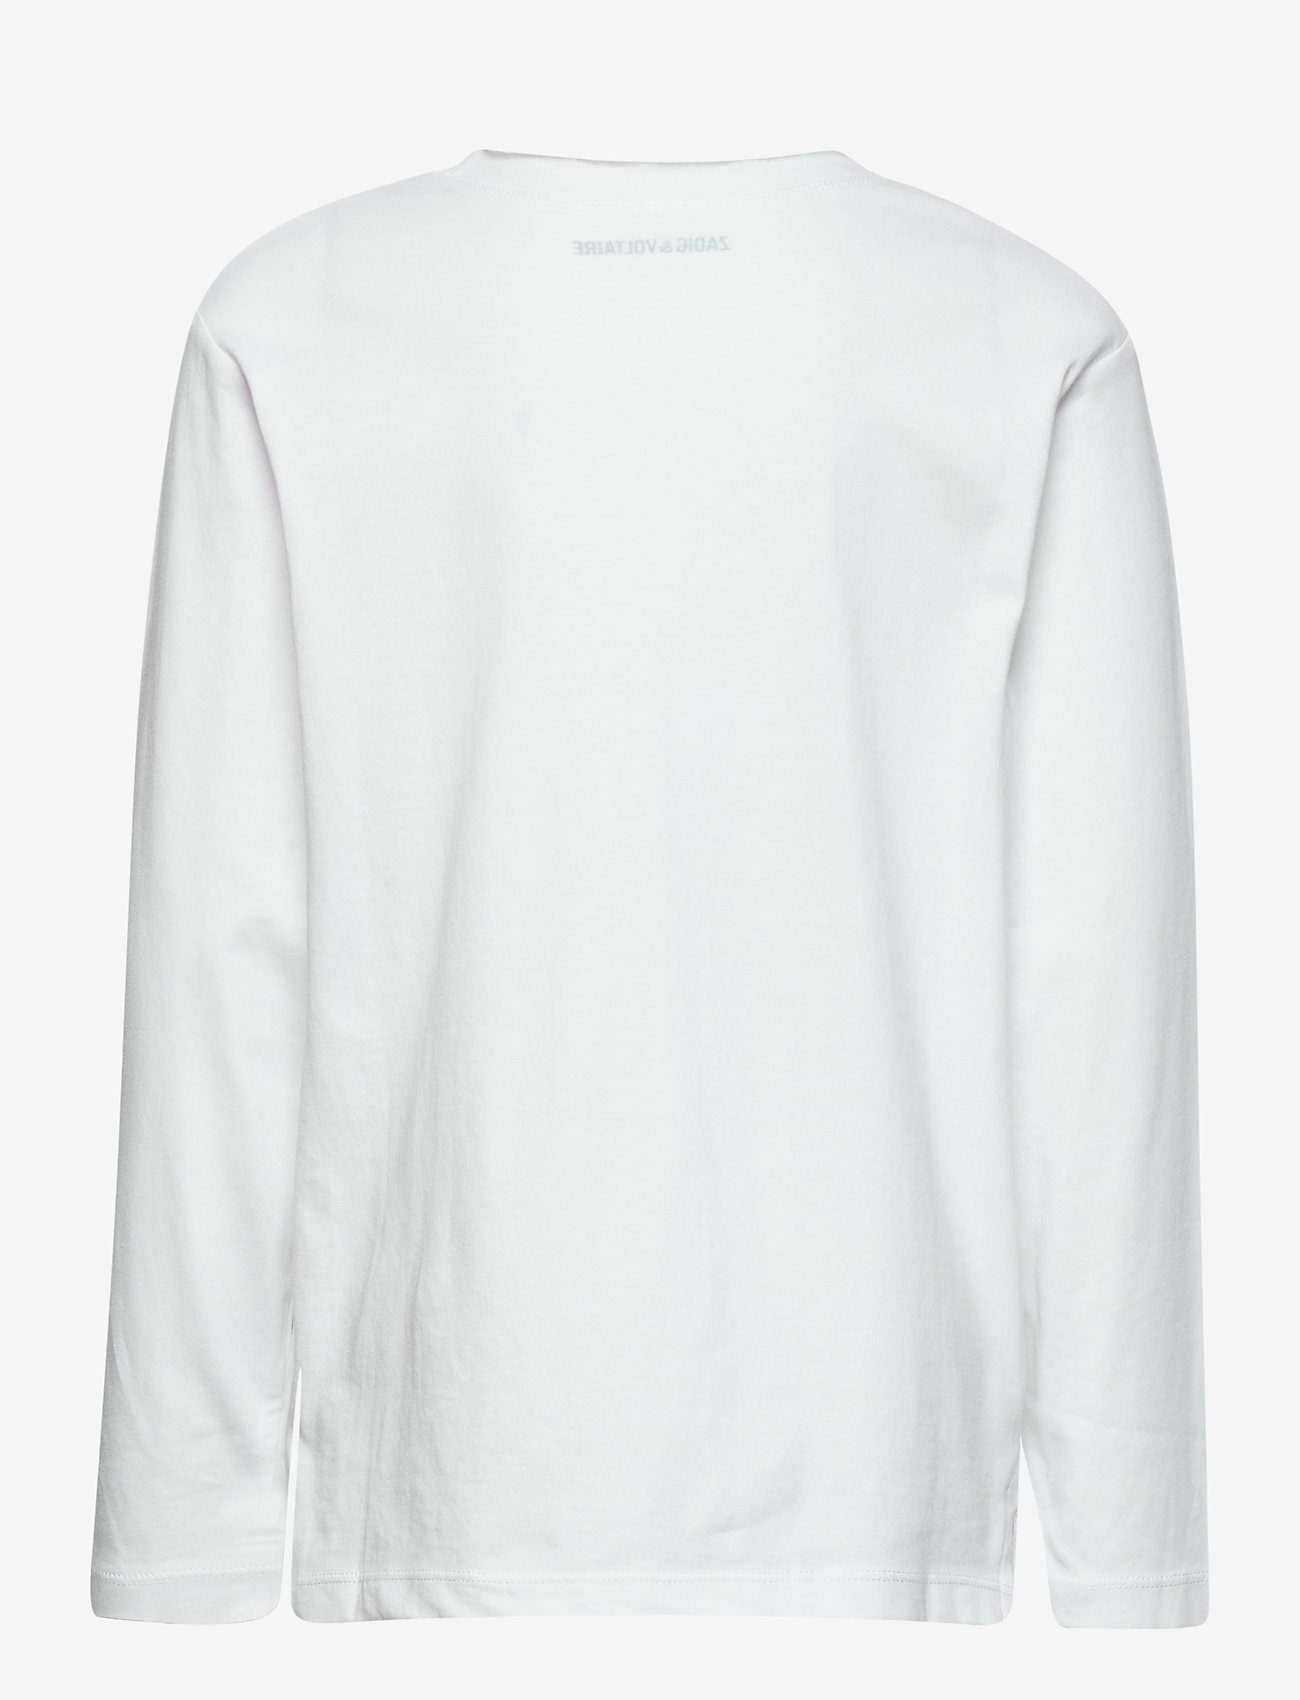 Long Sleeve T-shirt (White) (35.25 €) - Zadig & Voltaire Kids VOPa7